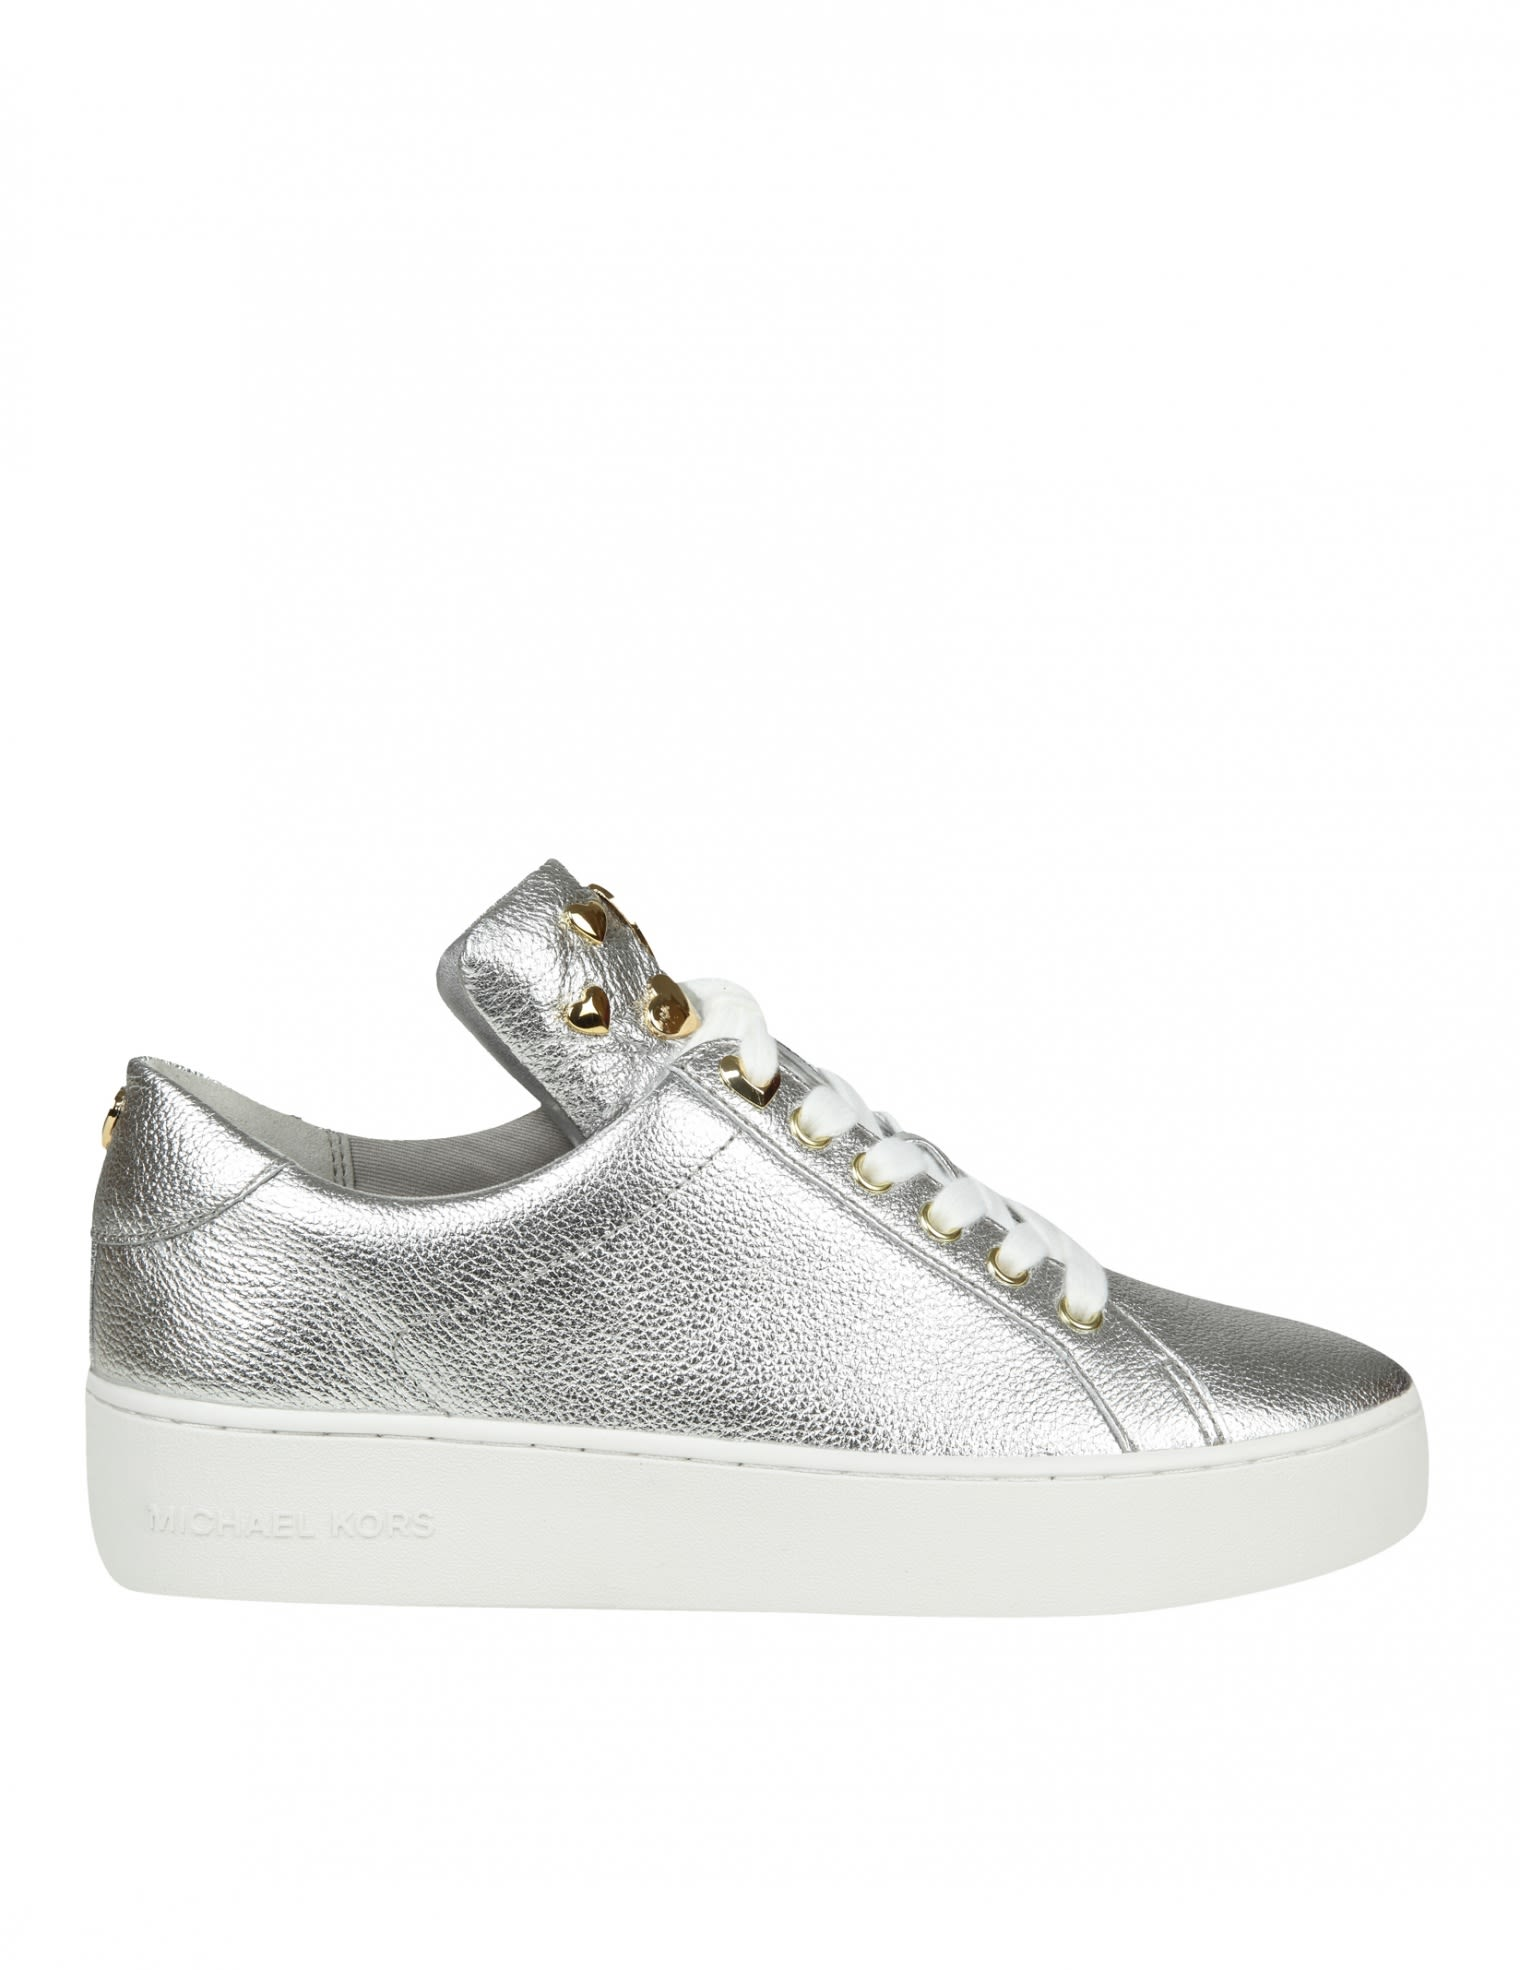 Michael Kors Mindy Sneakers In Laminated Silver Leather